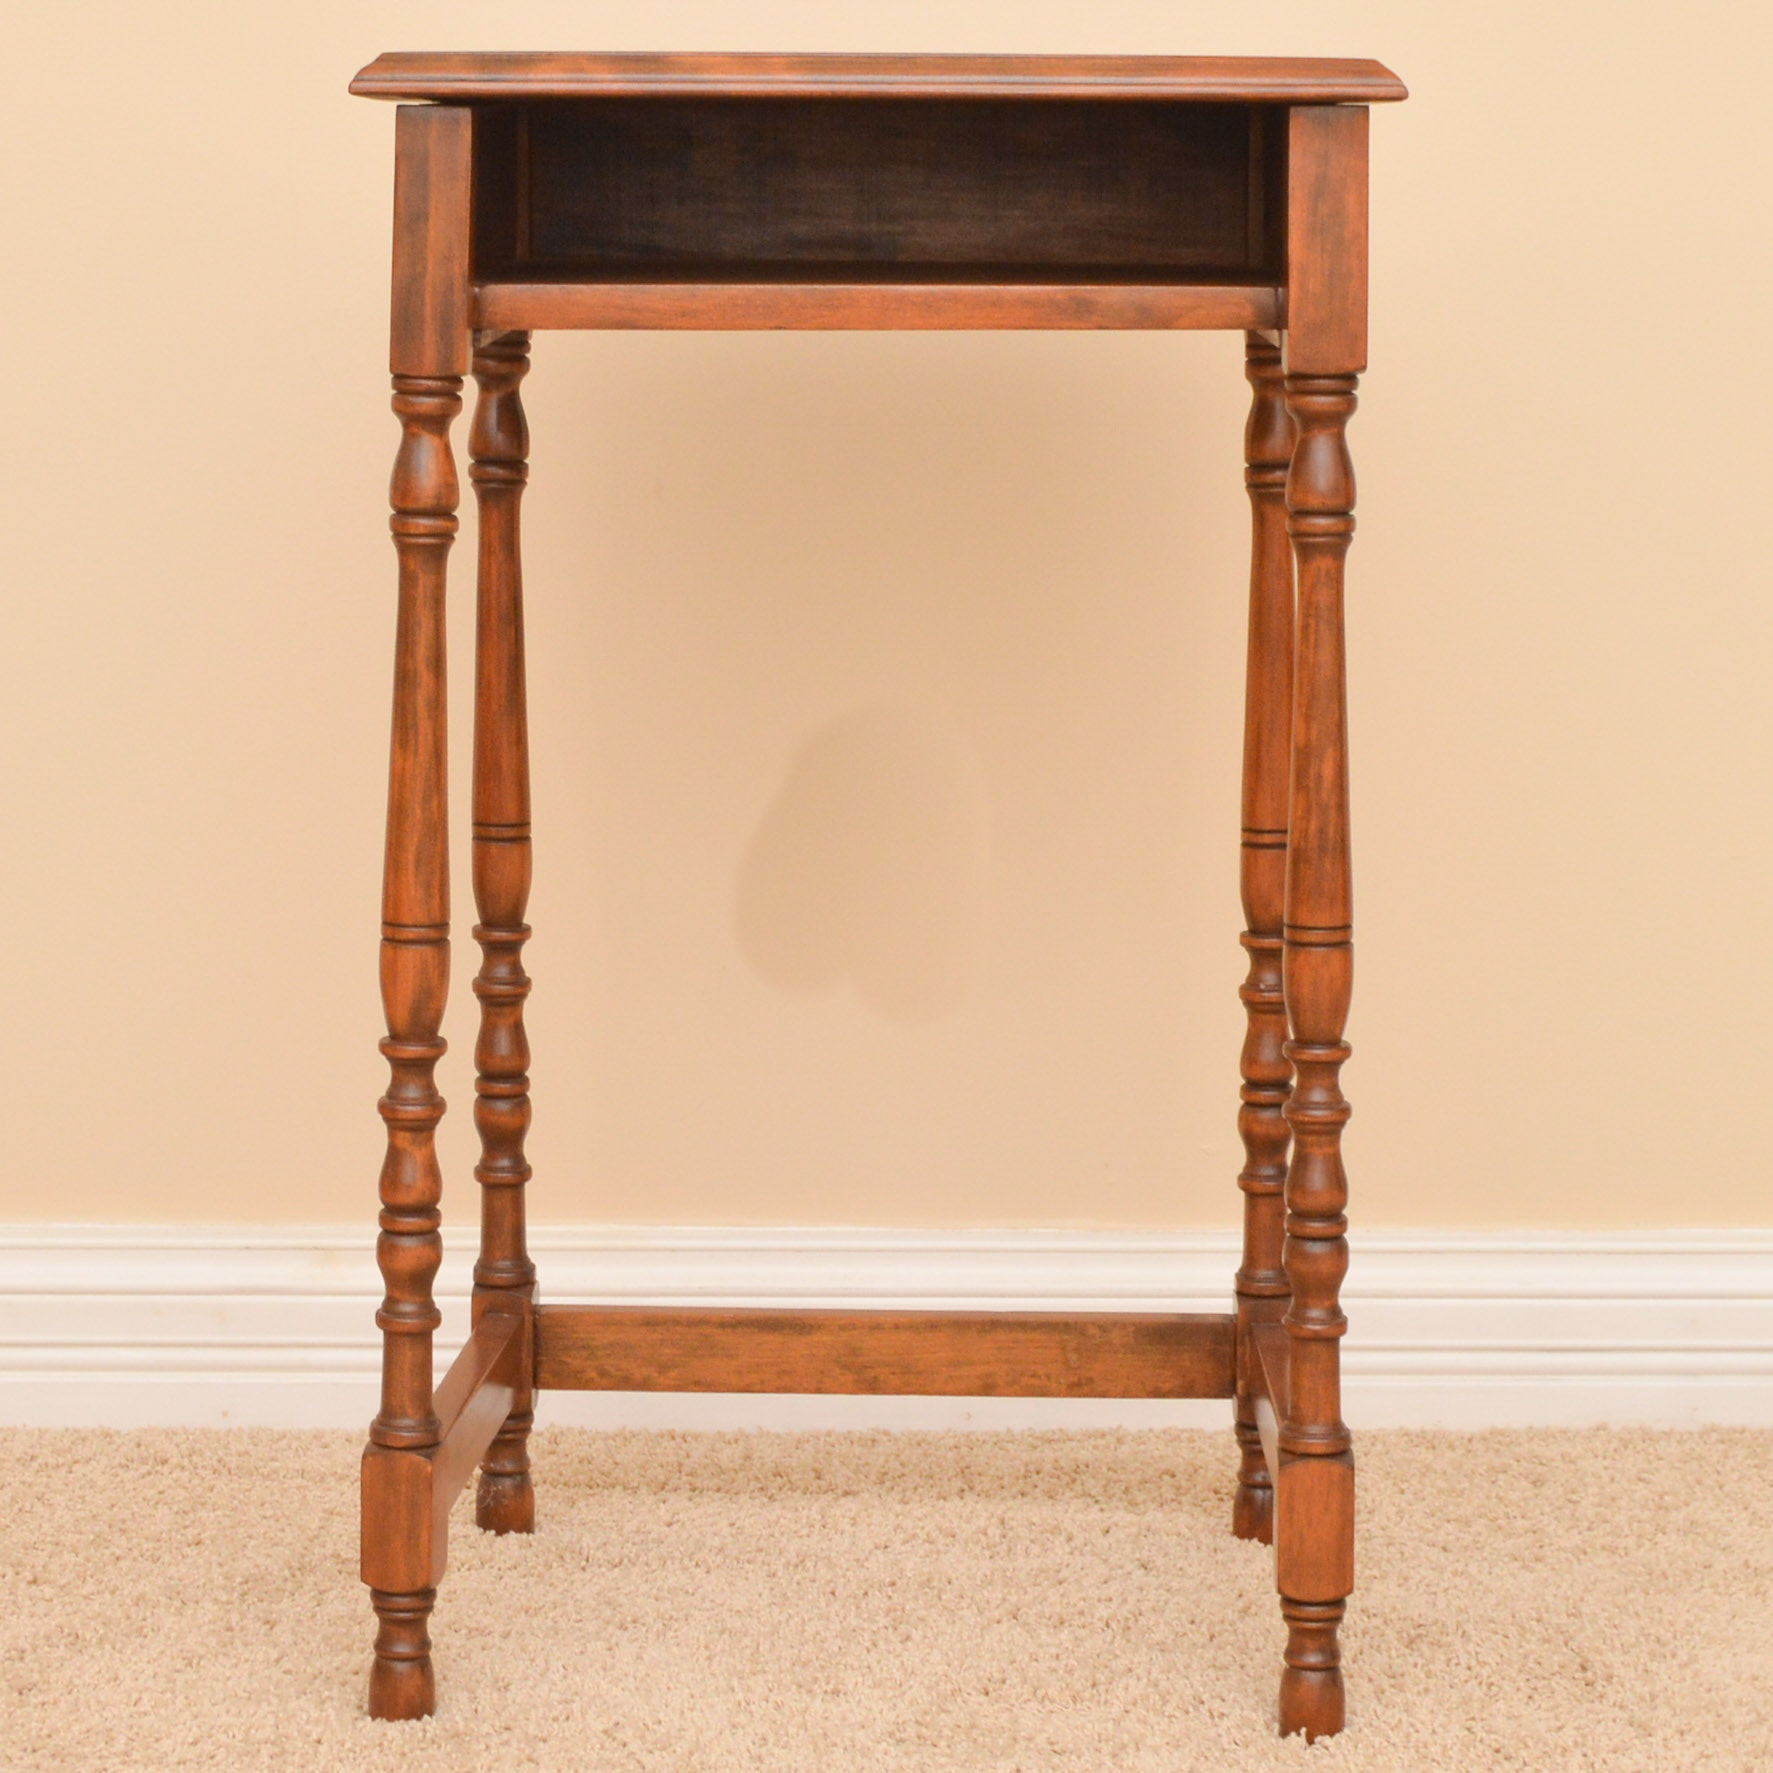 Vintage Accent Table with Shelf